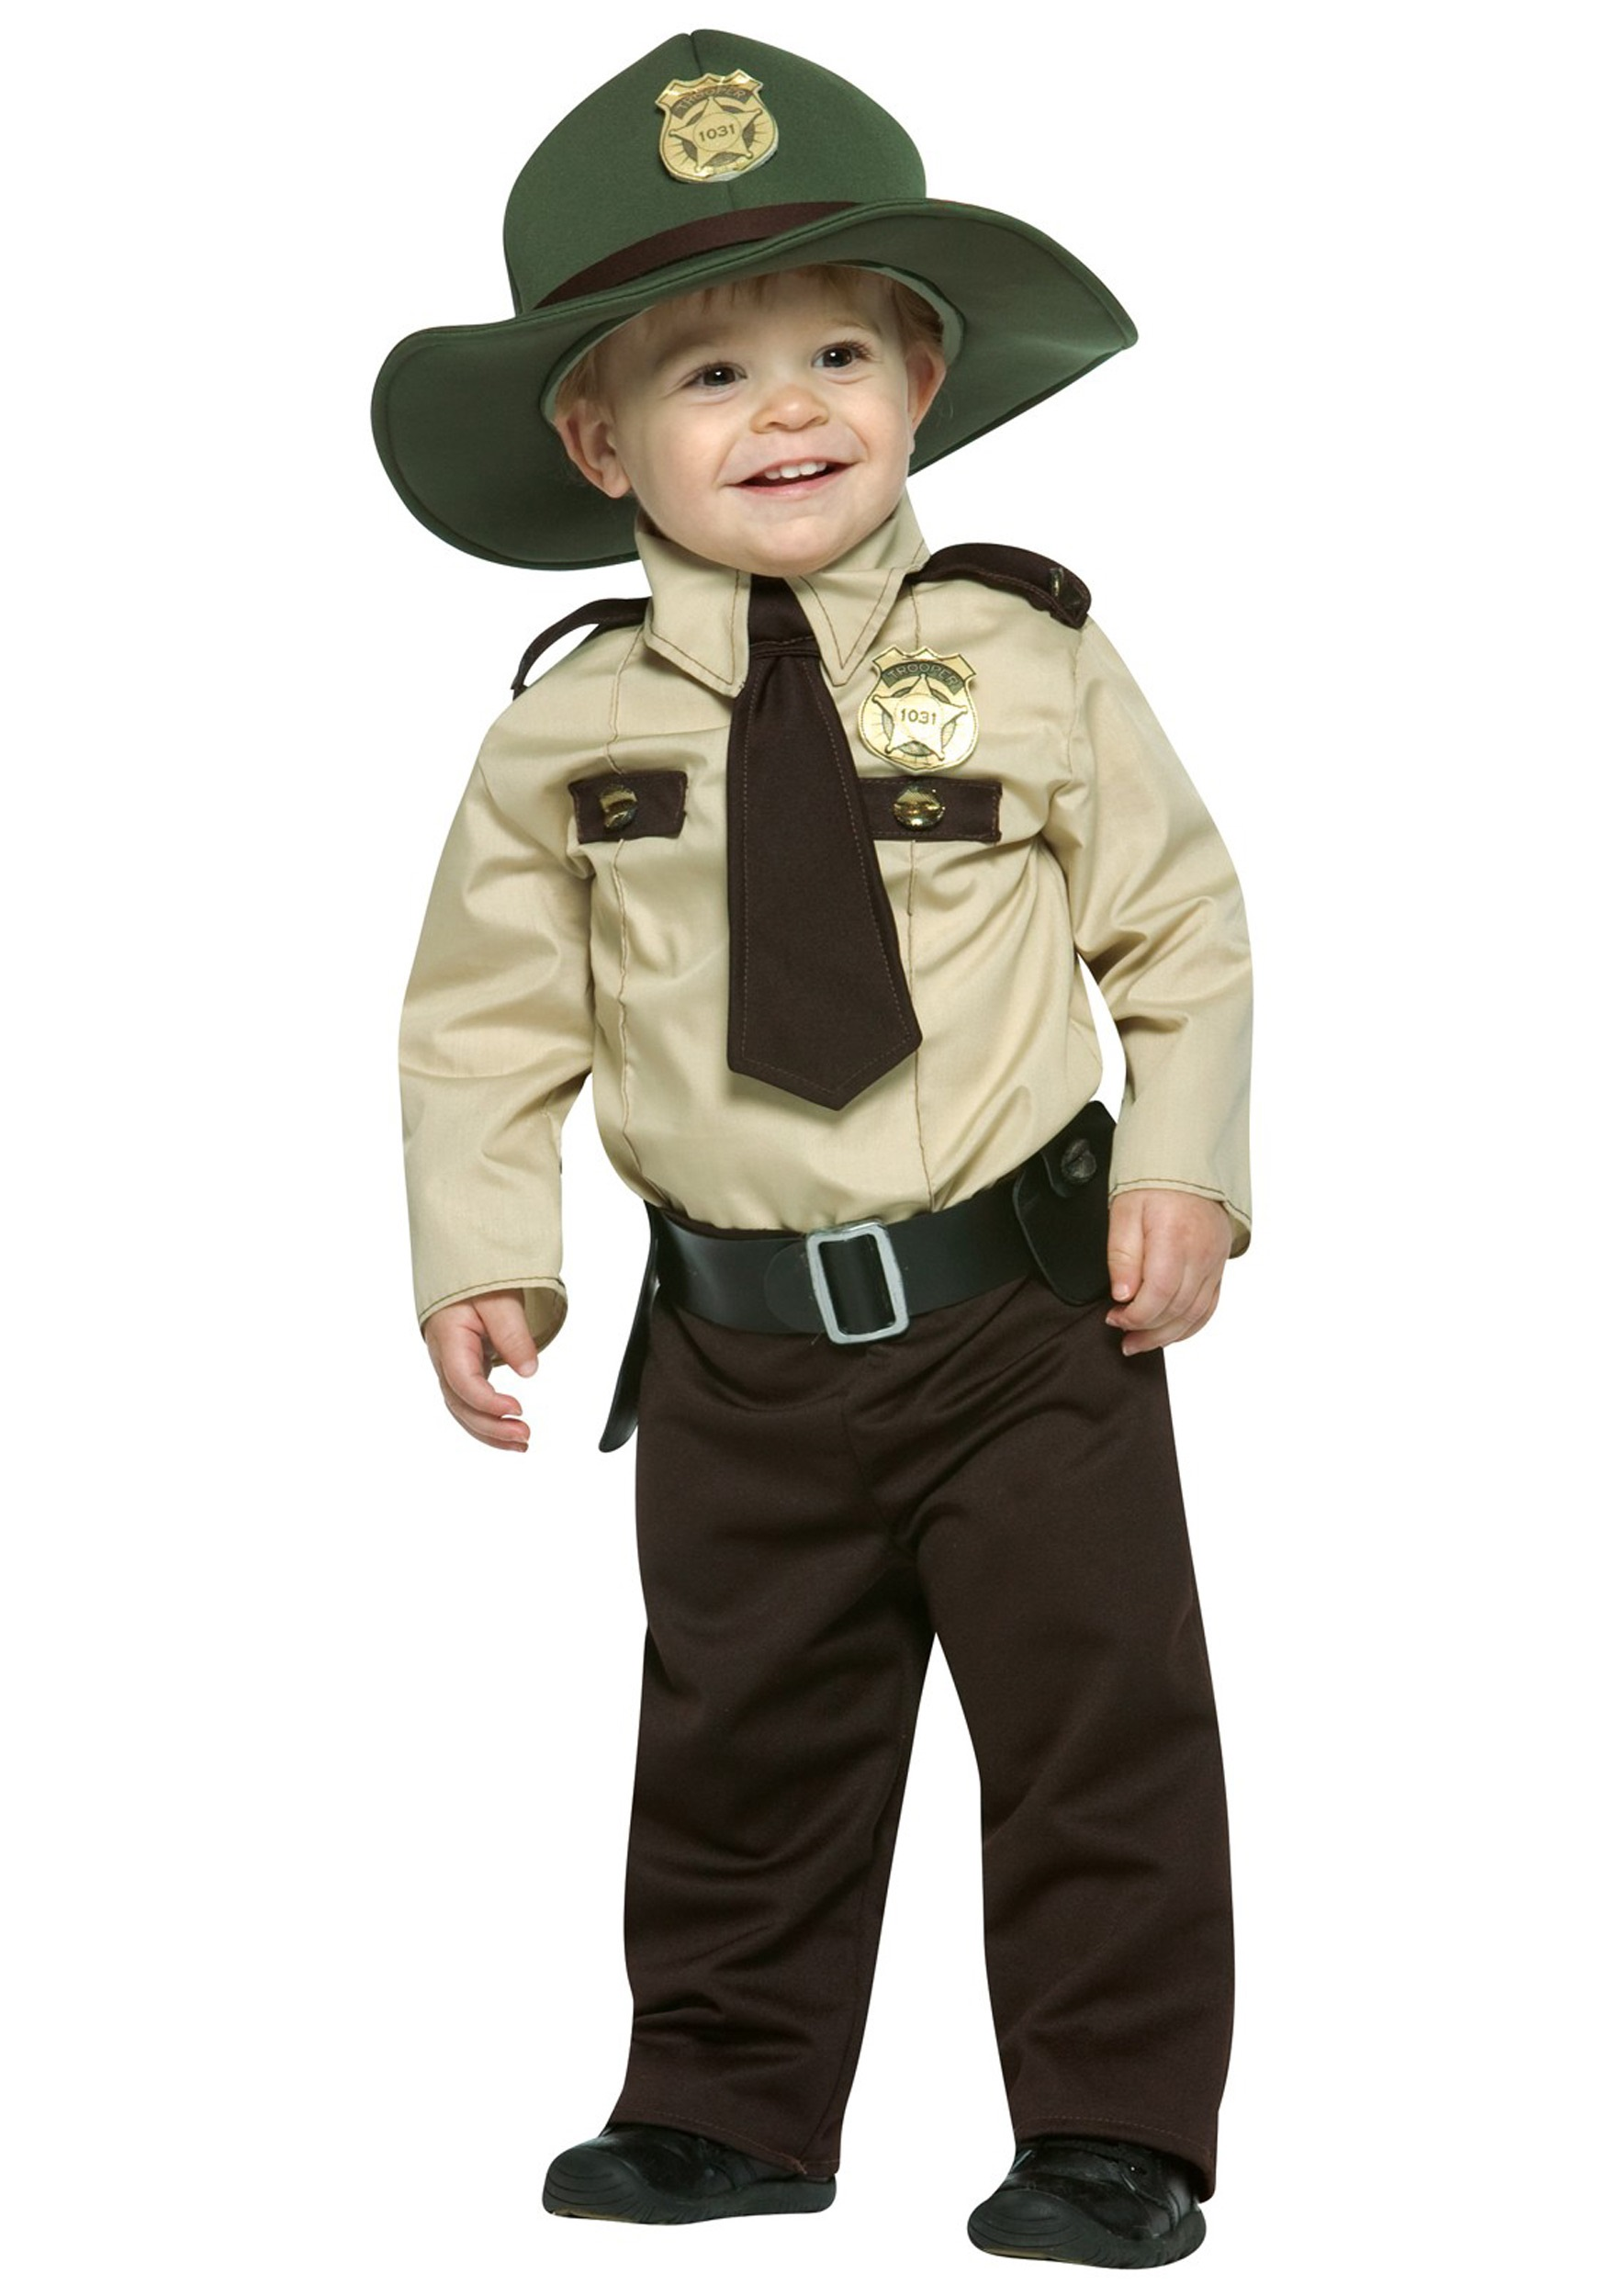 Infant State Trooper Costume  sc 1 st  Halloween Costumes & Infant State Trooper Costume - Baby Police Costumes